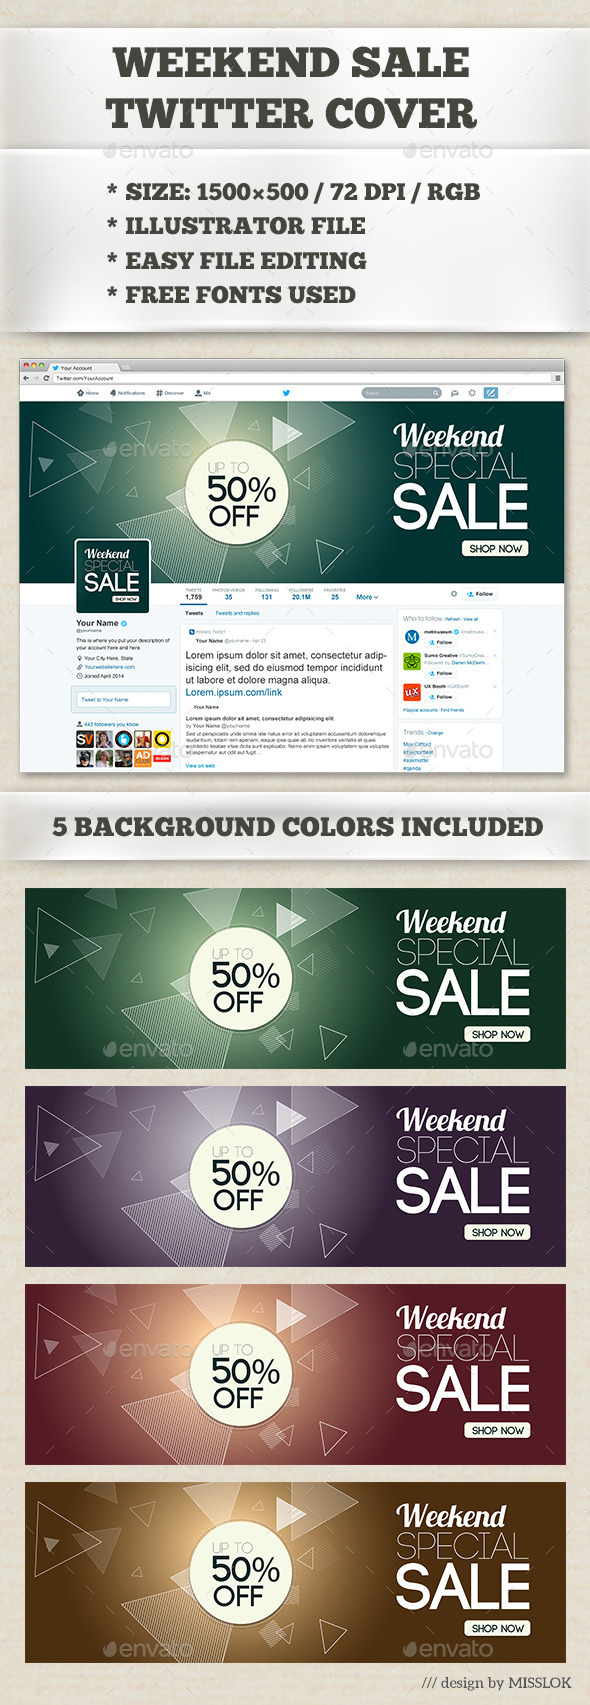 GraphicRiver Weekend Sale Twitter Cover 8858426